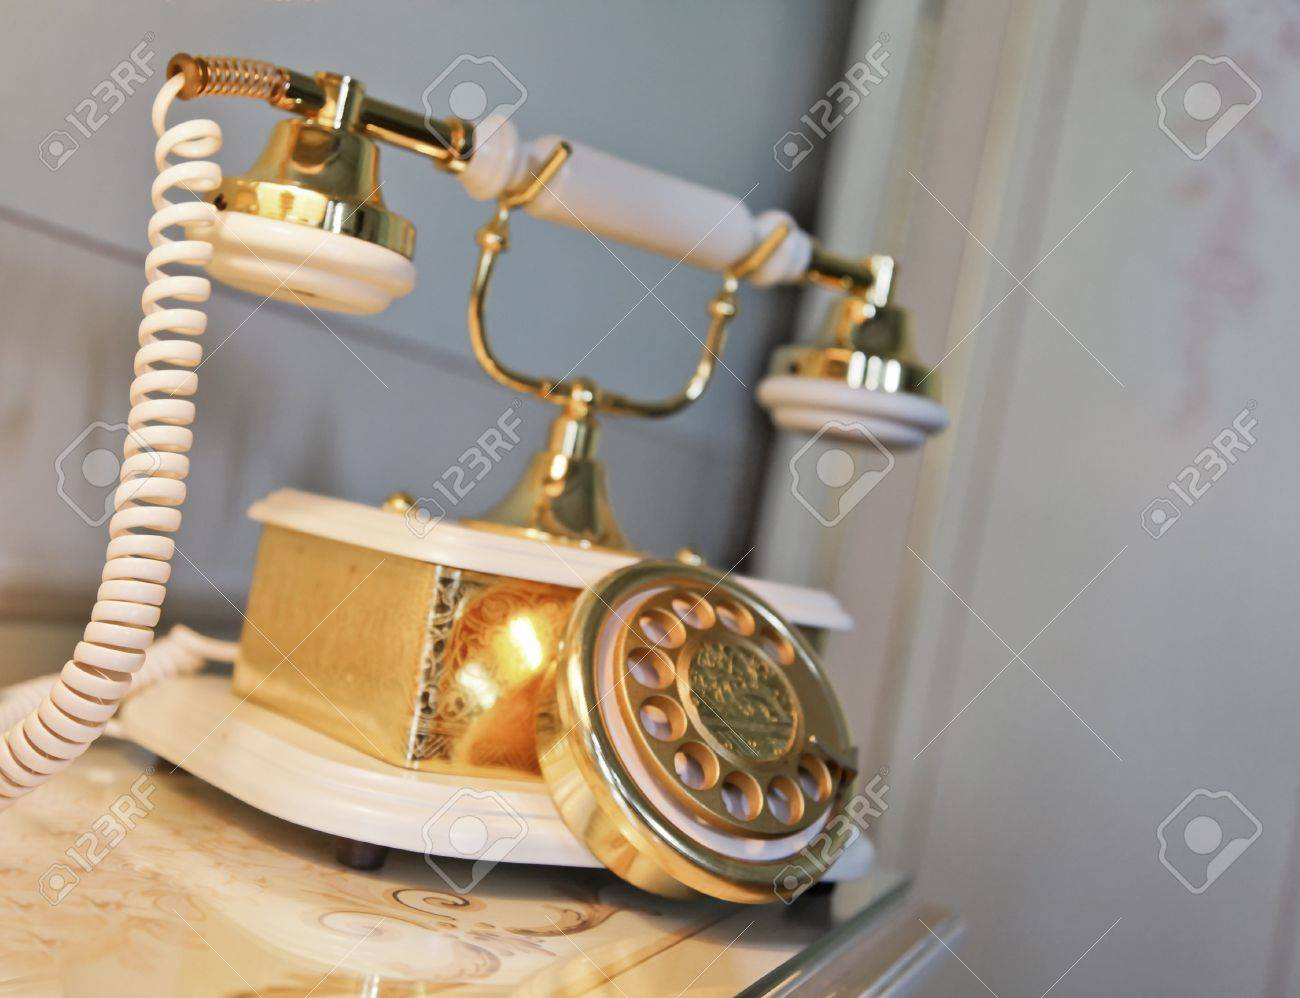 Interior Design Element Of Gold And Brass Creamic Telephone Retro Style On A Bedisde Table Stock